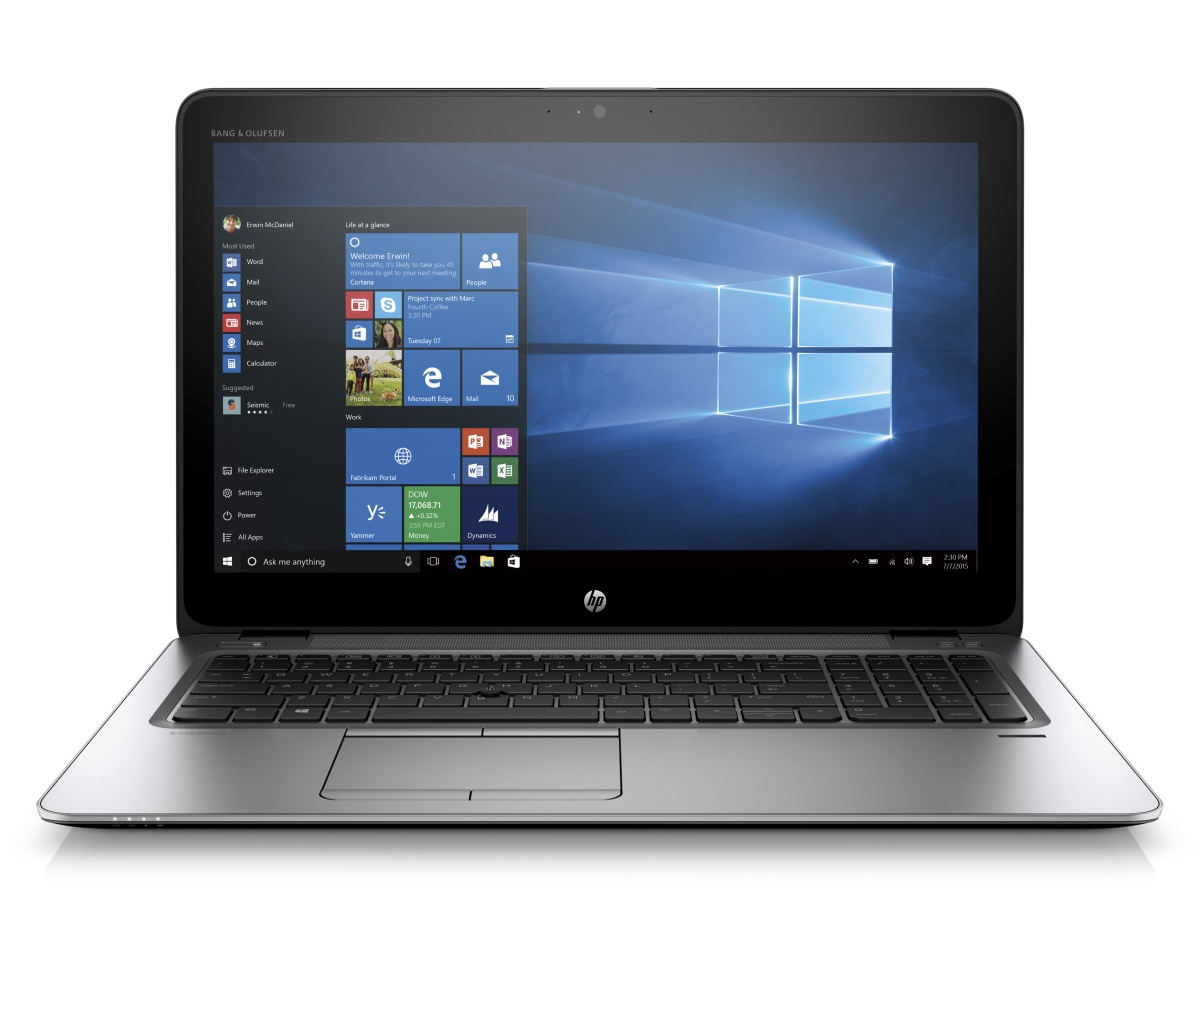 HP EliteBook 850 G3 i5-6200U/ 4GB/ 500GB / 15,6'' HD / backlit keyb / Win 10 Pro downg